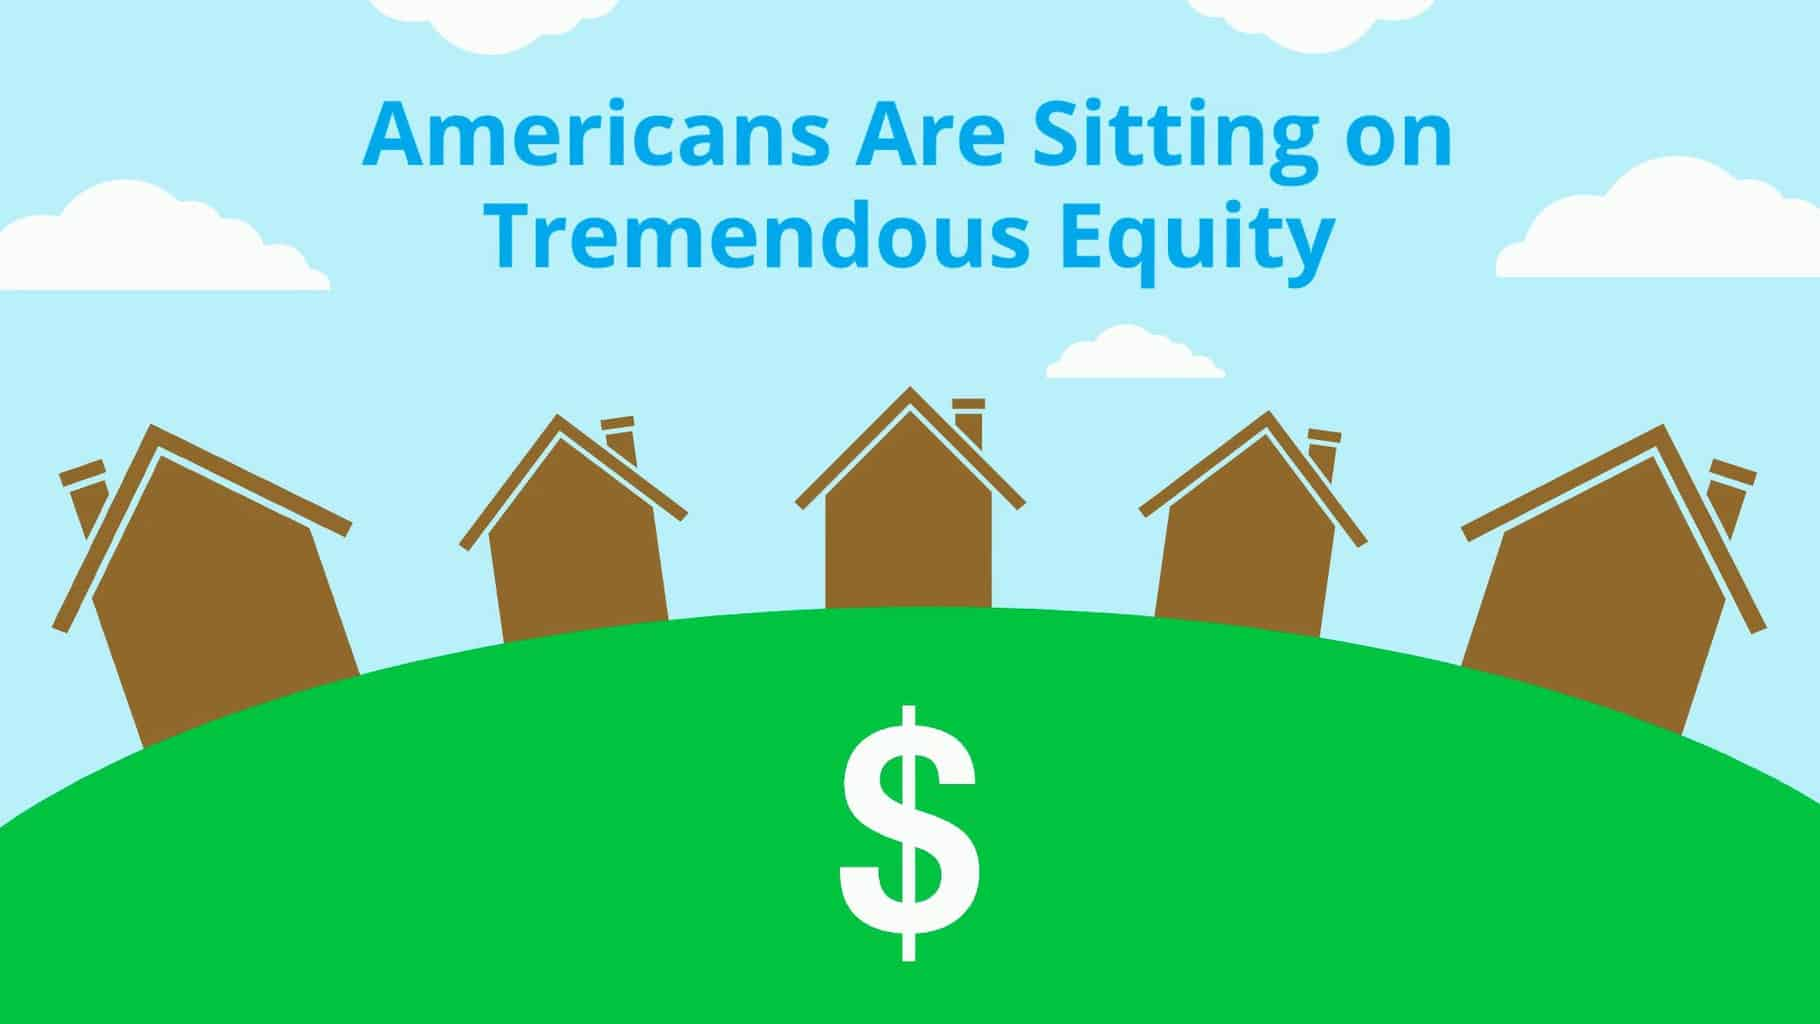 Americans Are Sitting on Tremendous Equity